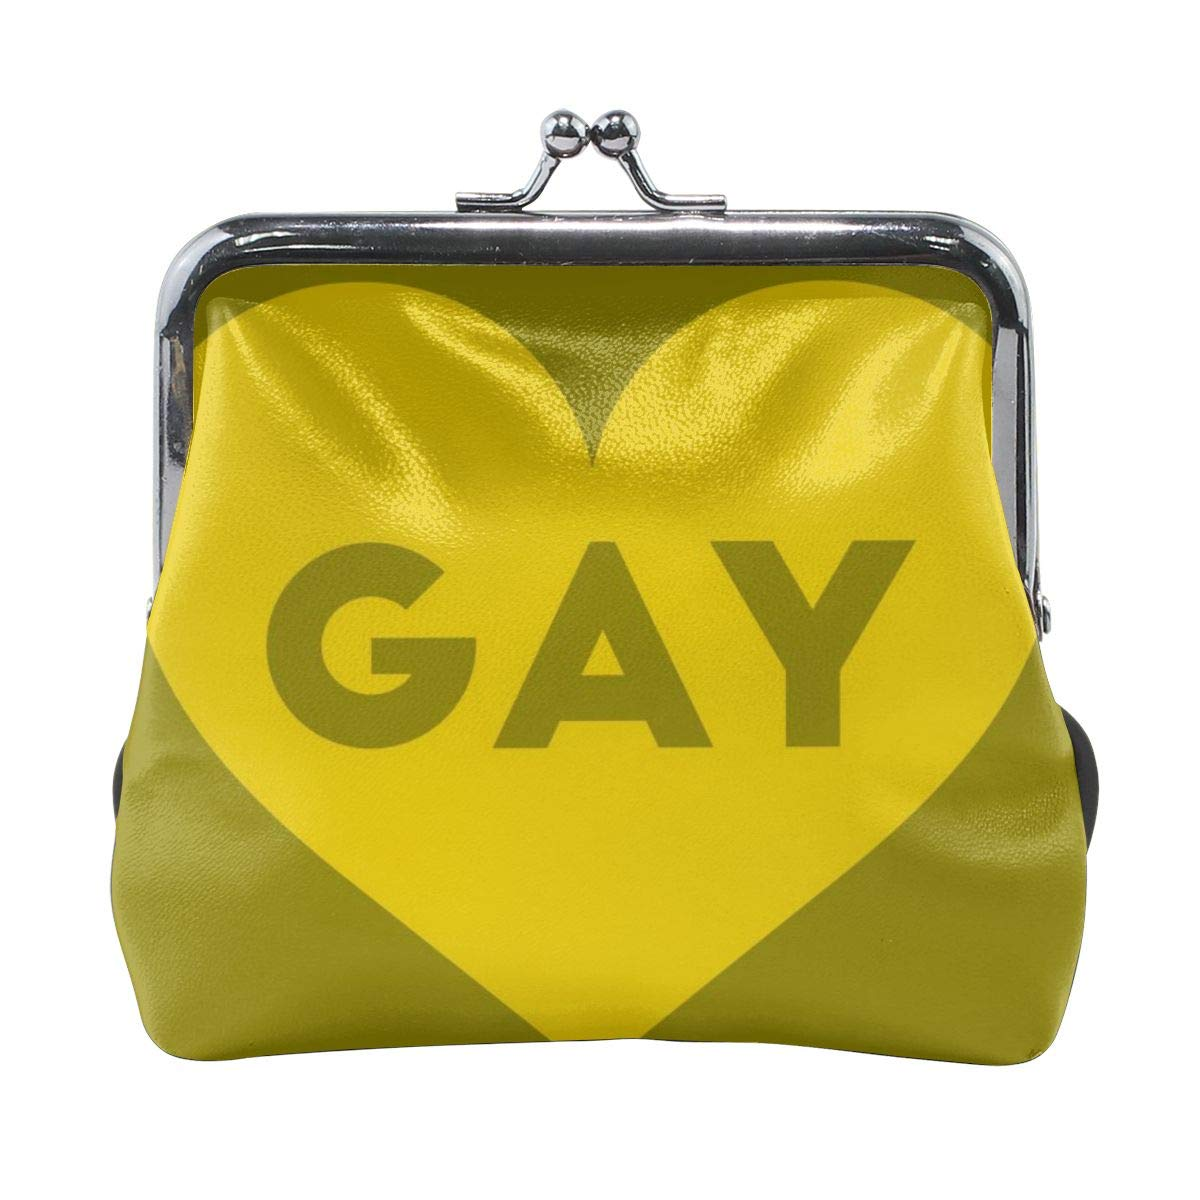 Green Love Flag Gay Vintage Pouch Girl Kiss-lock Change Purse Wallets Buckle Leather Coin Purses Key Woman Printed